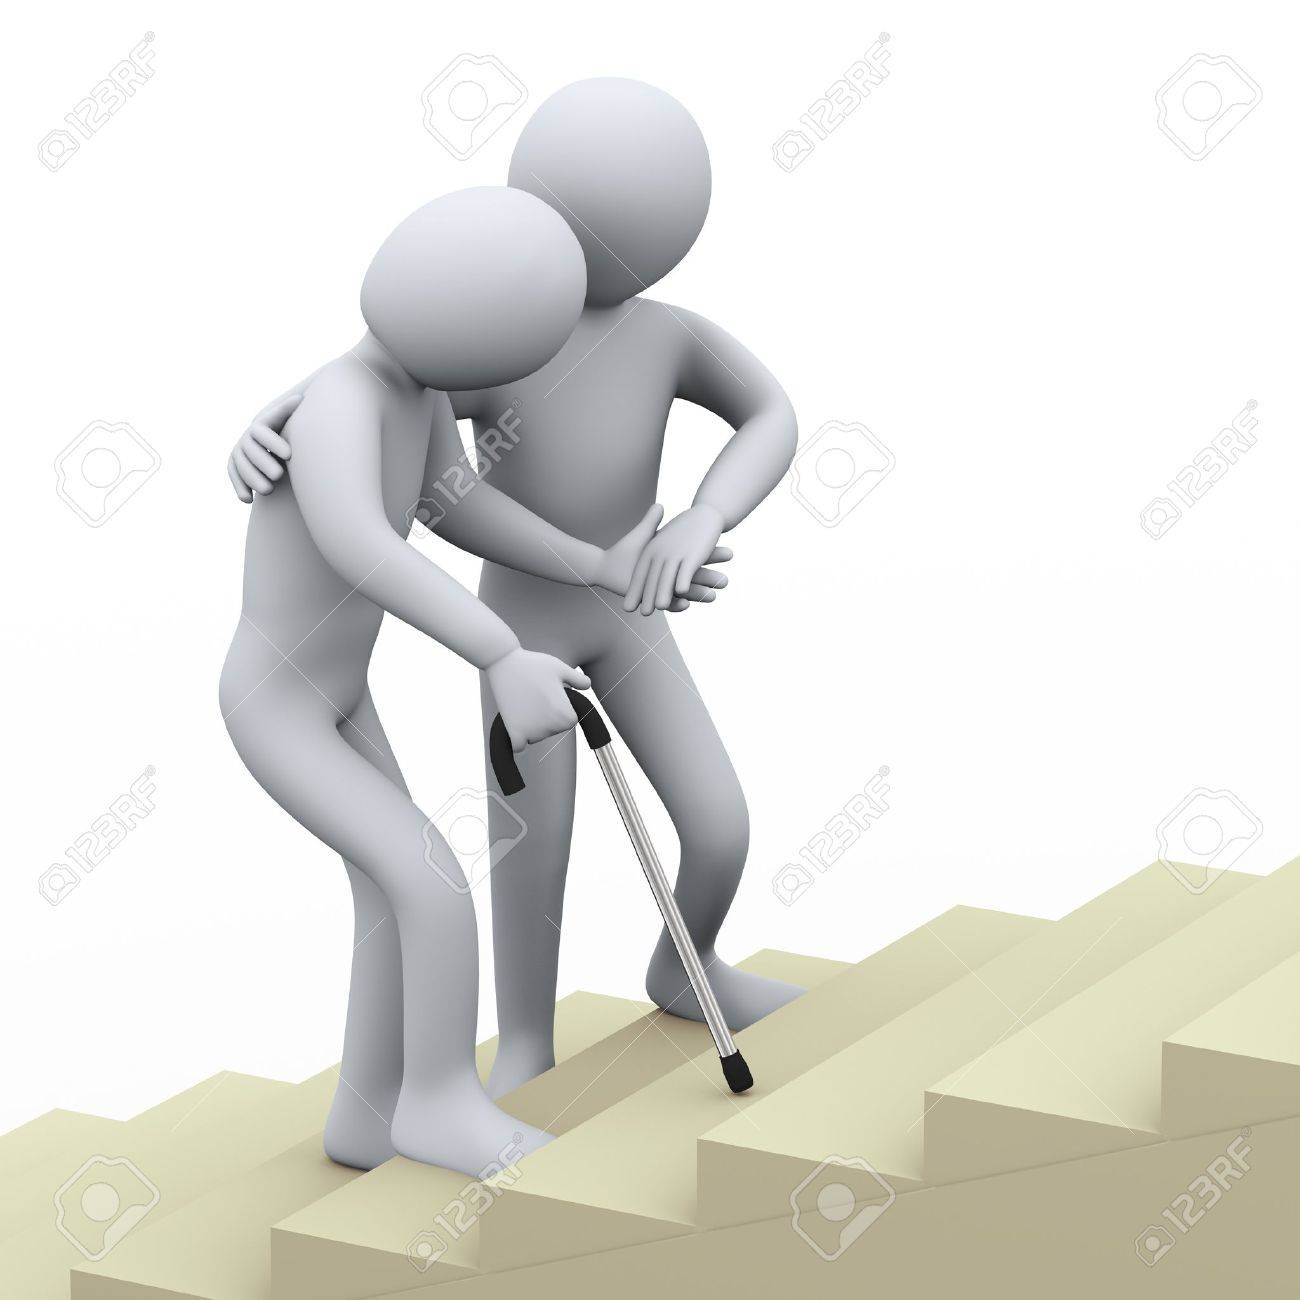 weakness images stock pictures royalty weakness photos and weakness 3d illustration of old man being helped by young person 3d rendering of people